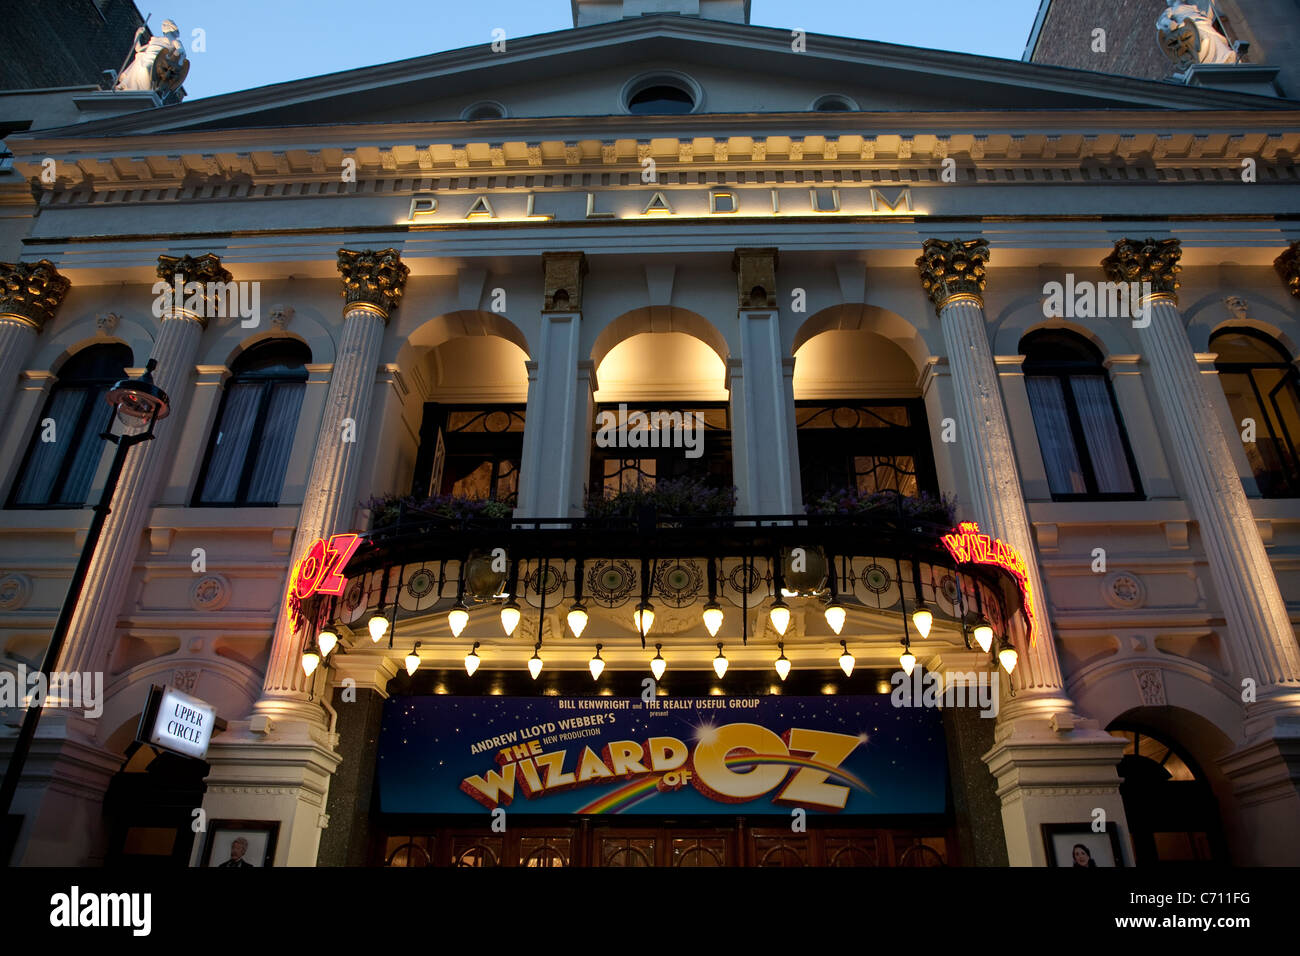 Wizard of Oz at the Palladium Theater in the West End illuminated at night, Argyll Street off Oxford Street, London, - Stock Image